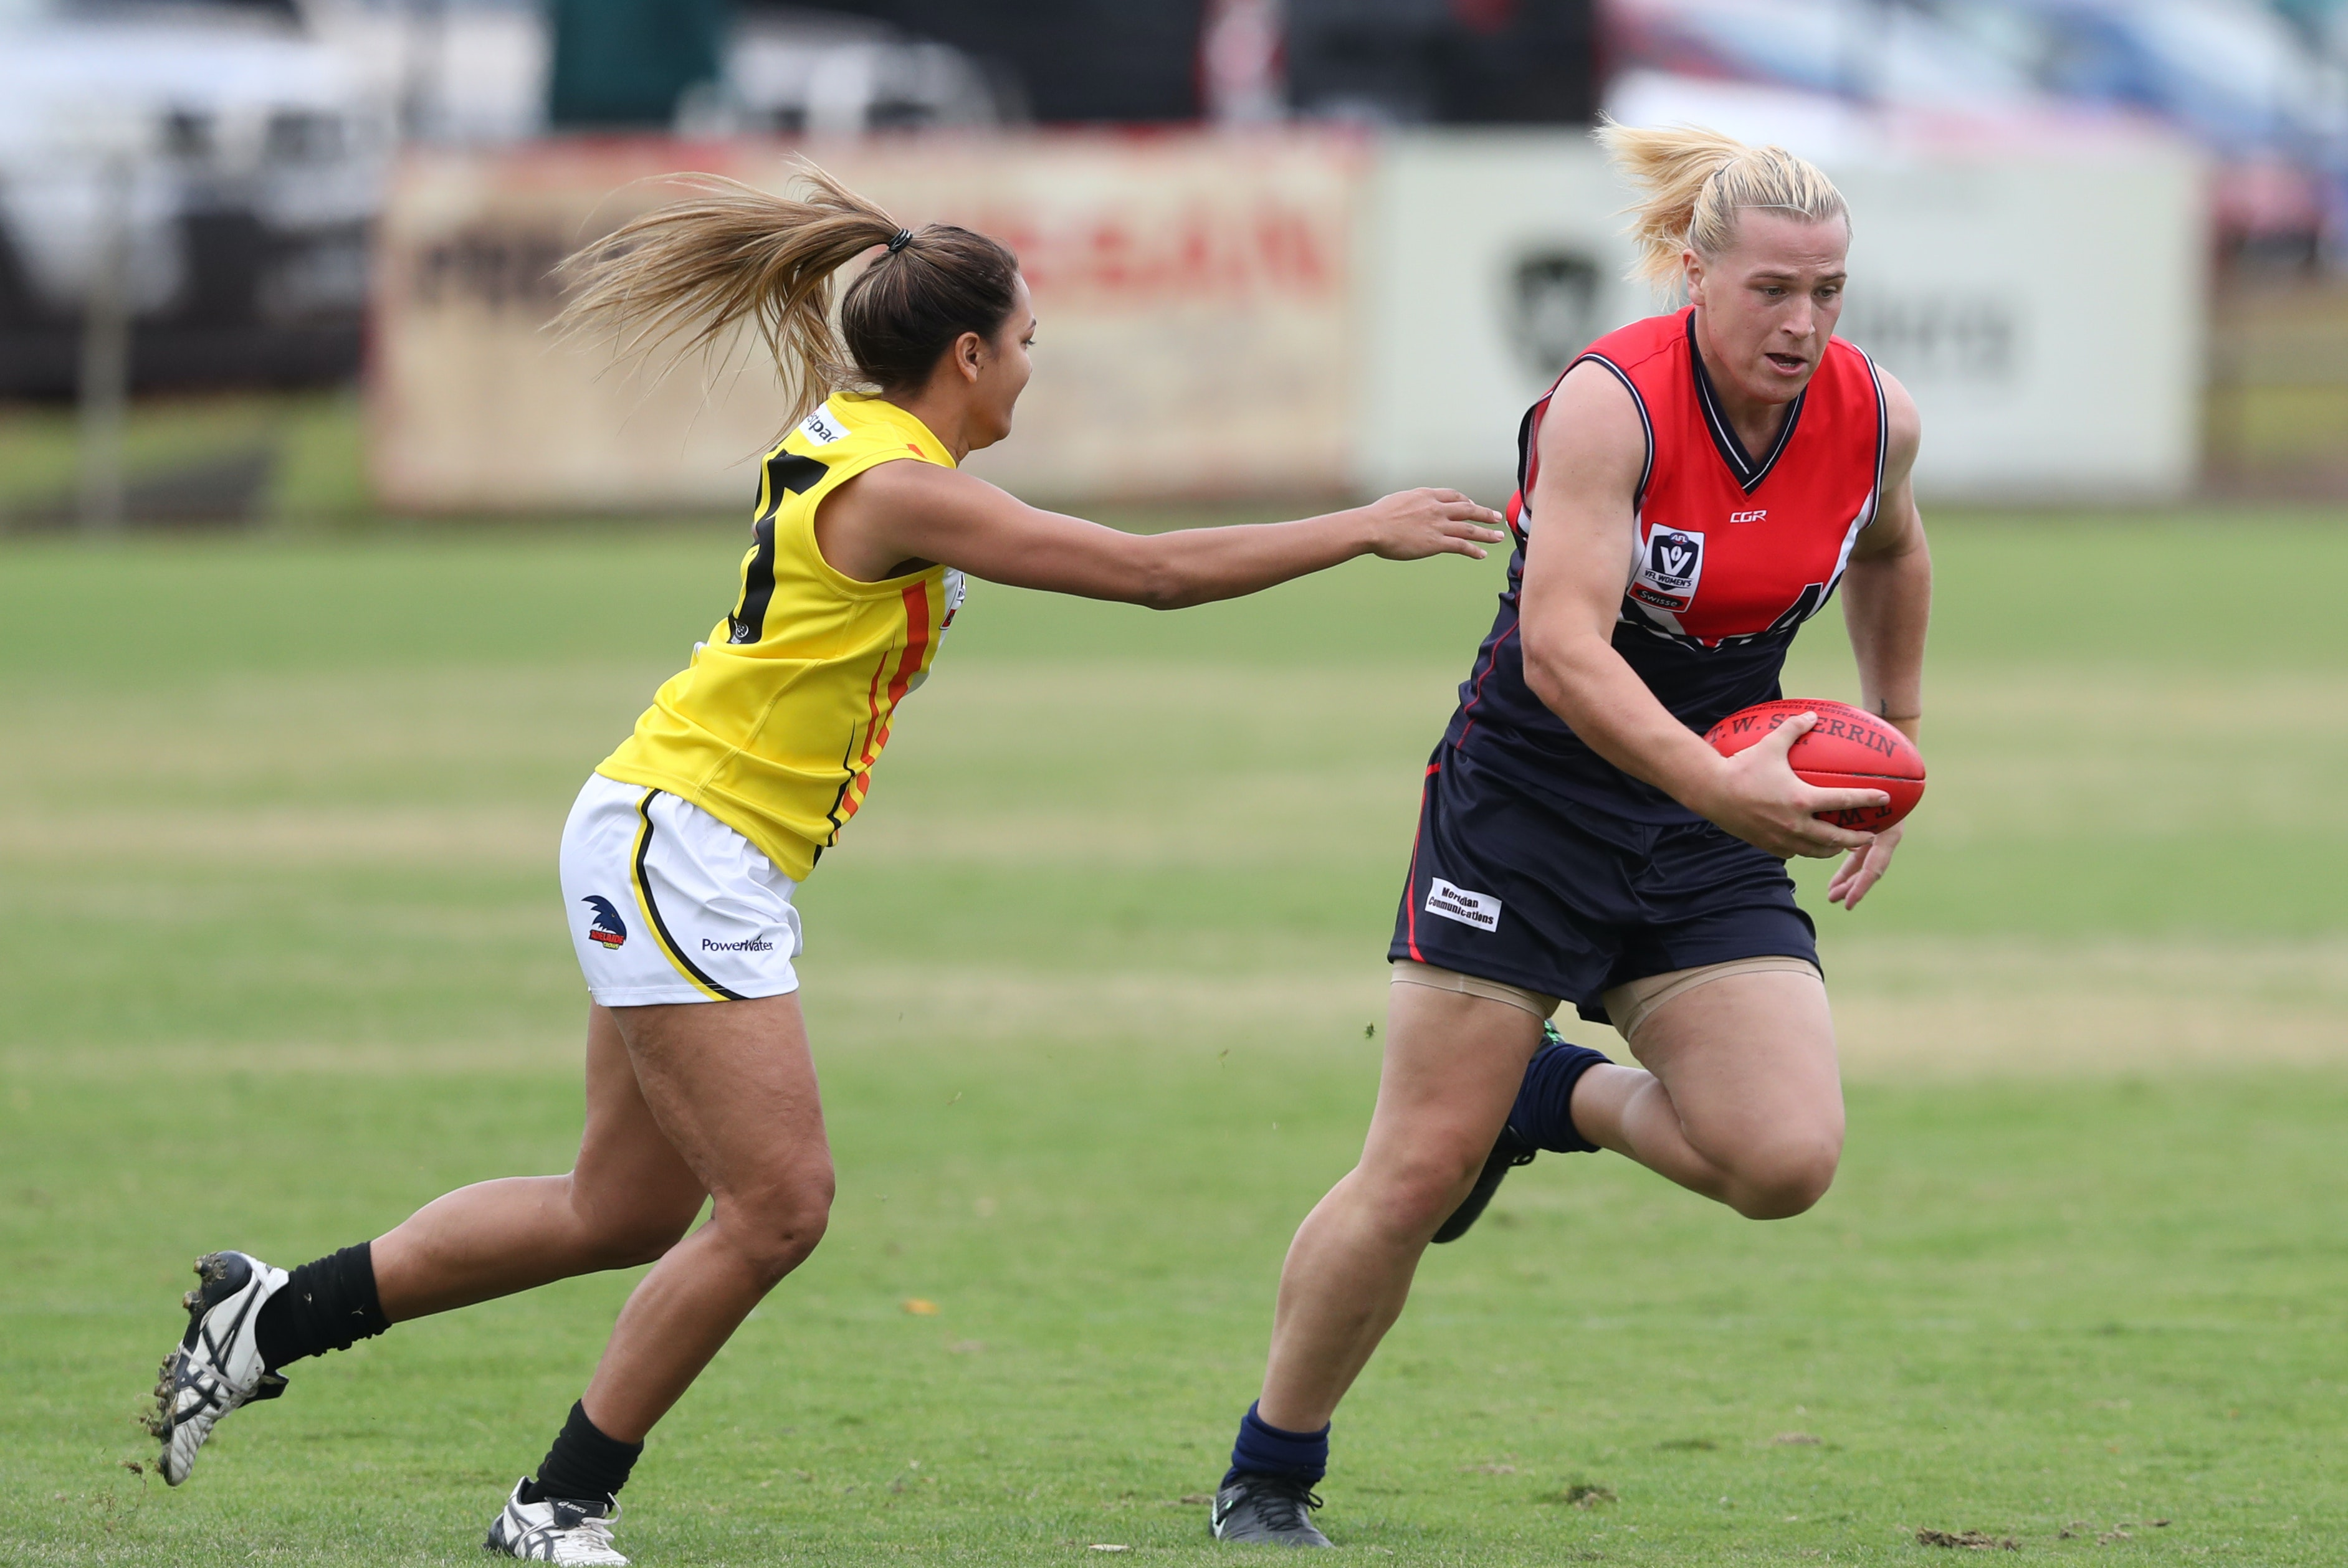 The AFL's gender diversity policy remains an apprehensive work in progress